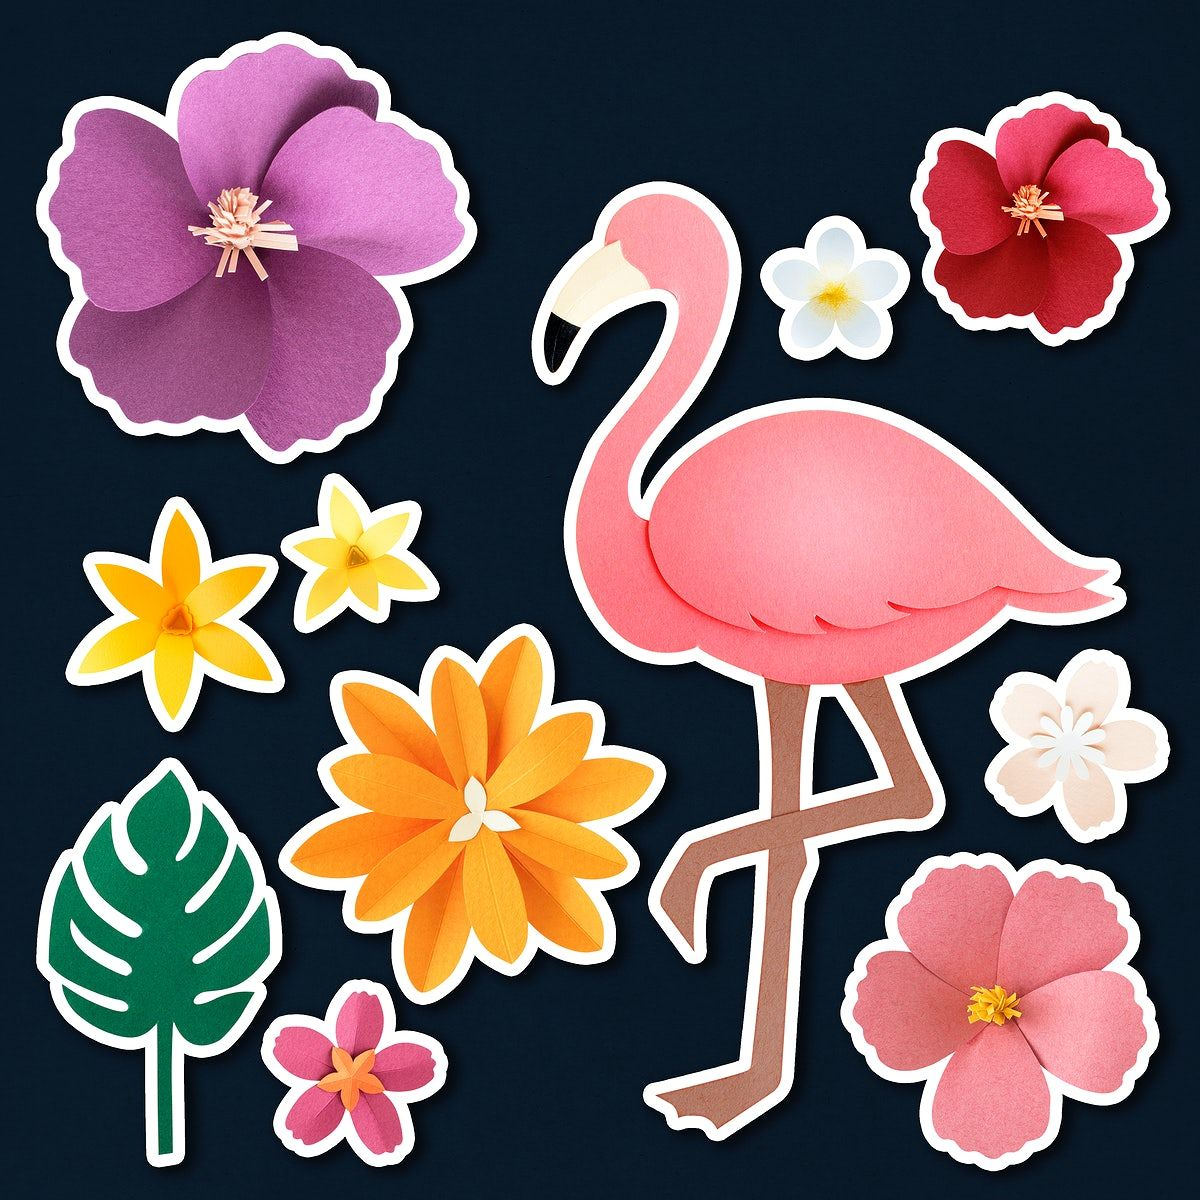 Download Premium Psd Of Pink Flamingo Paper Flower Sticker Psd Set 2468895 In 2020 Pink Flamingos Paper Flowers Paper Crafts